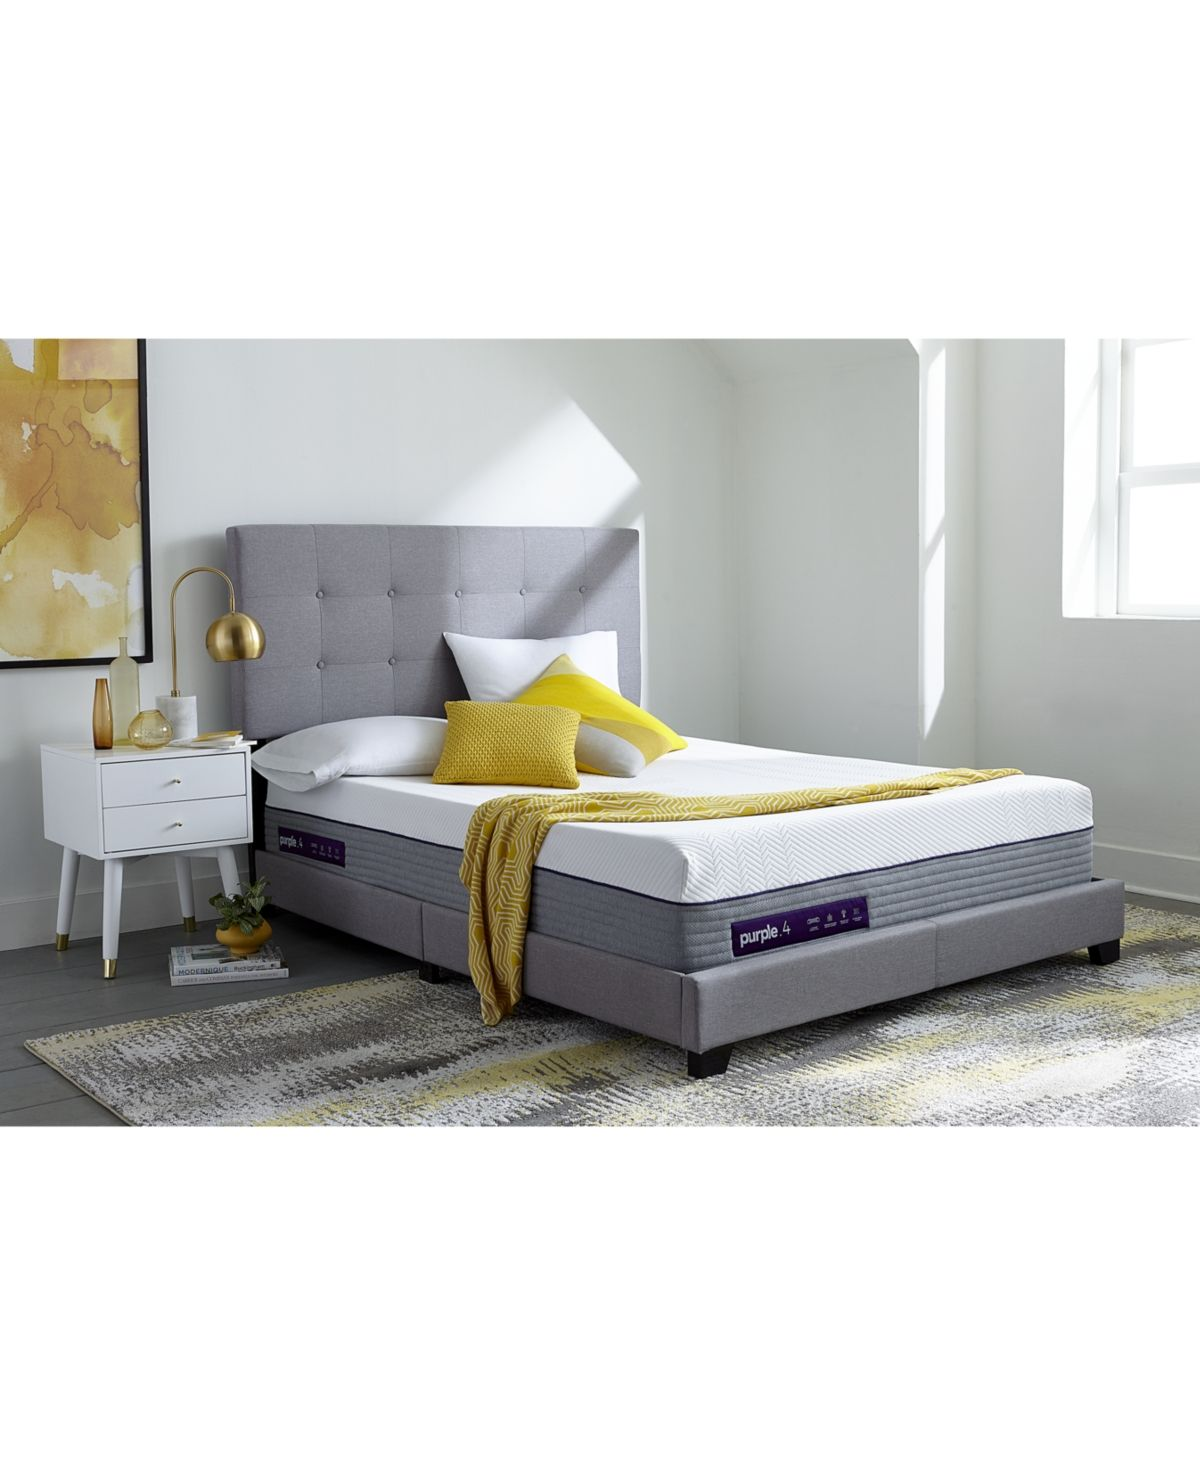 Purple 4 Hybrid Premier 13 Mattress California King Reviews Mattresses Macy S Furniture For Small Spaces California King Bedding Queen Mattress